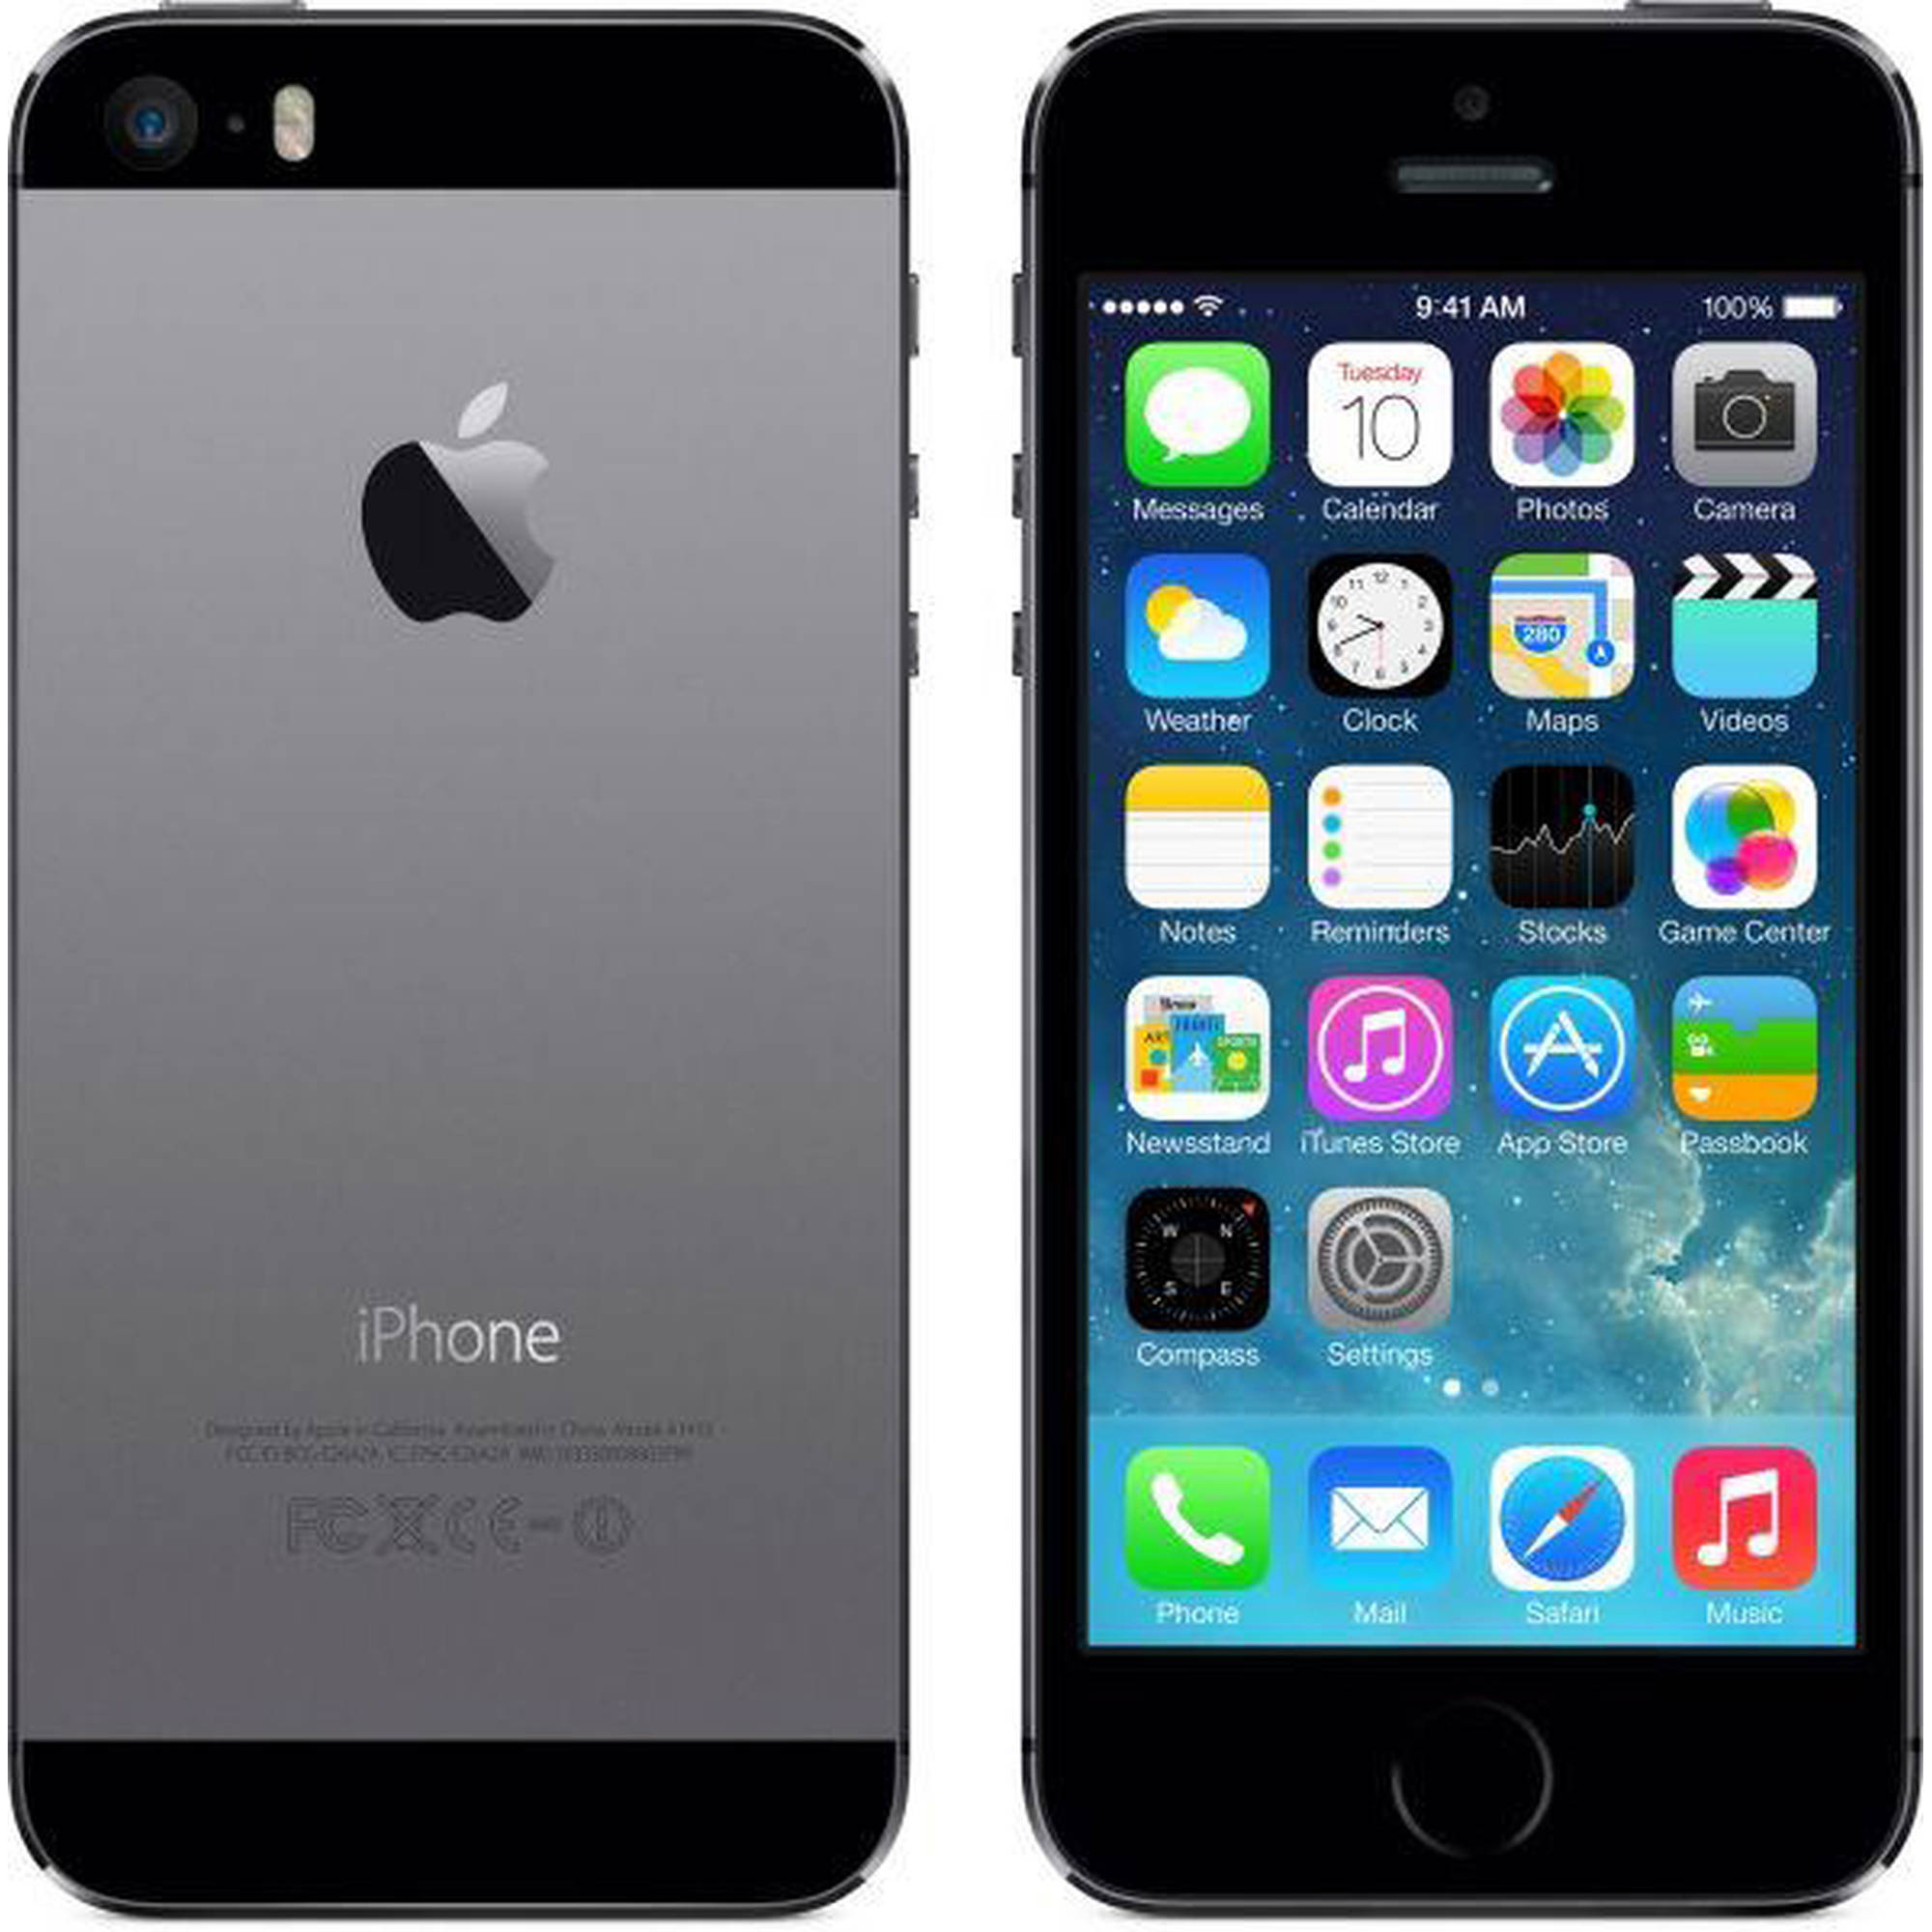 iphone 5 refurbished unlocked refurbished apple iphone 5s 16gb gsm smartphone unlocked 5576